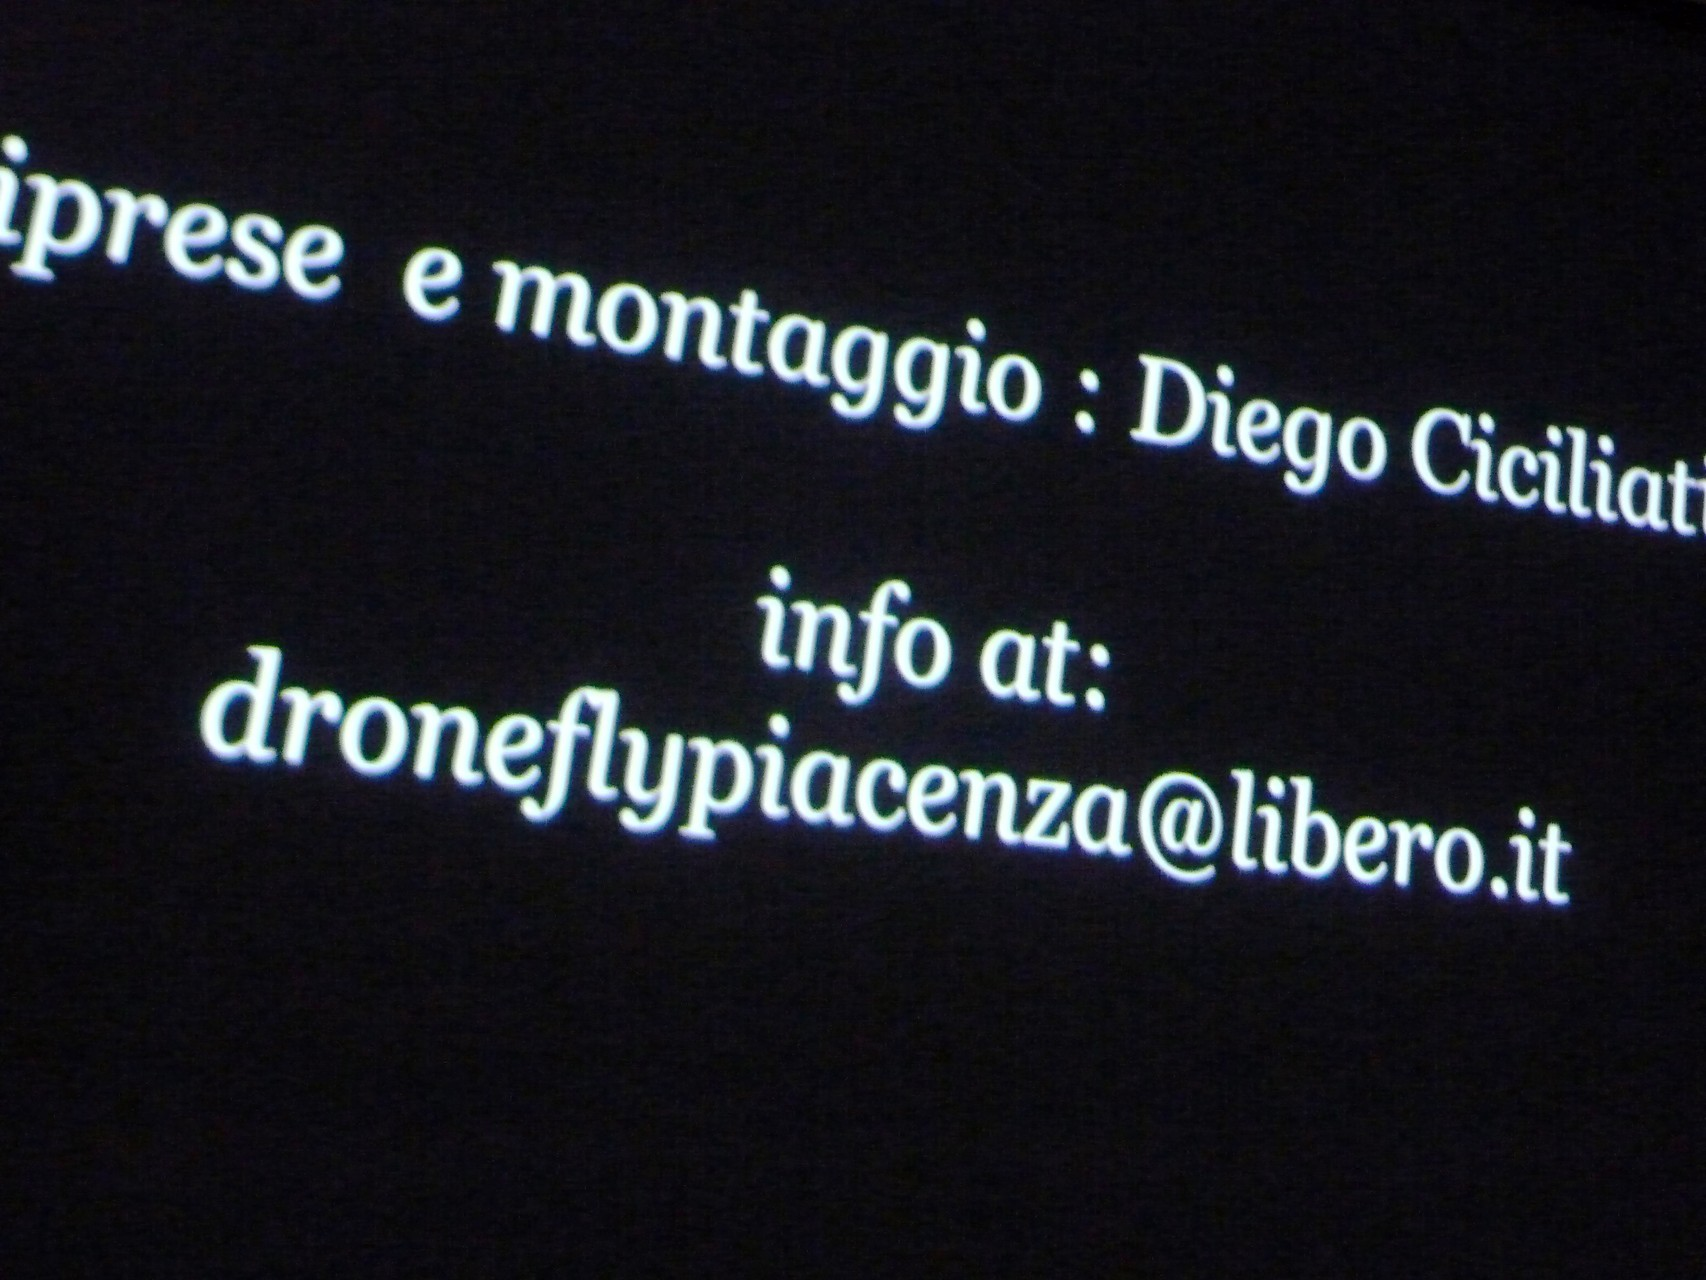 DRONE FLY Piacenza